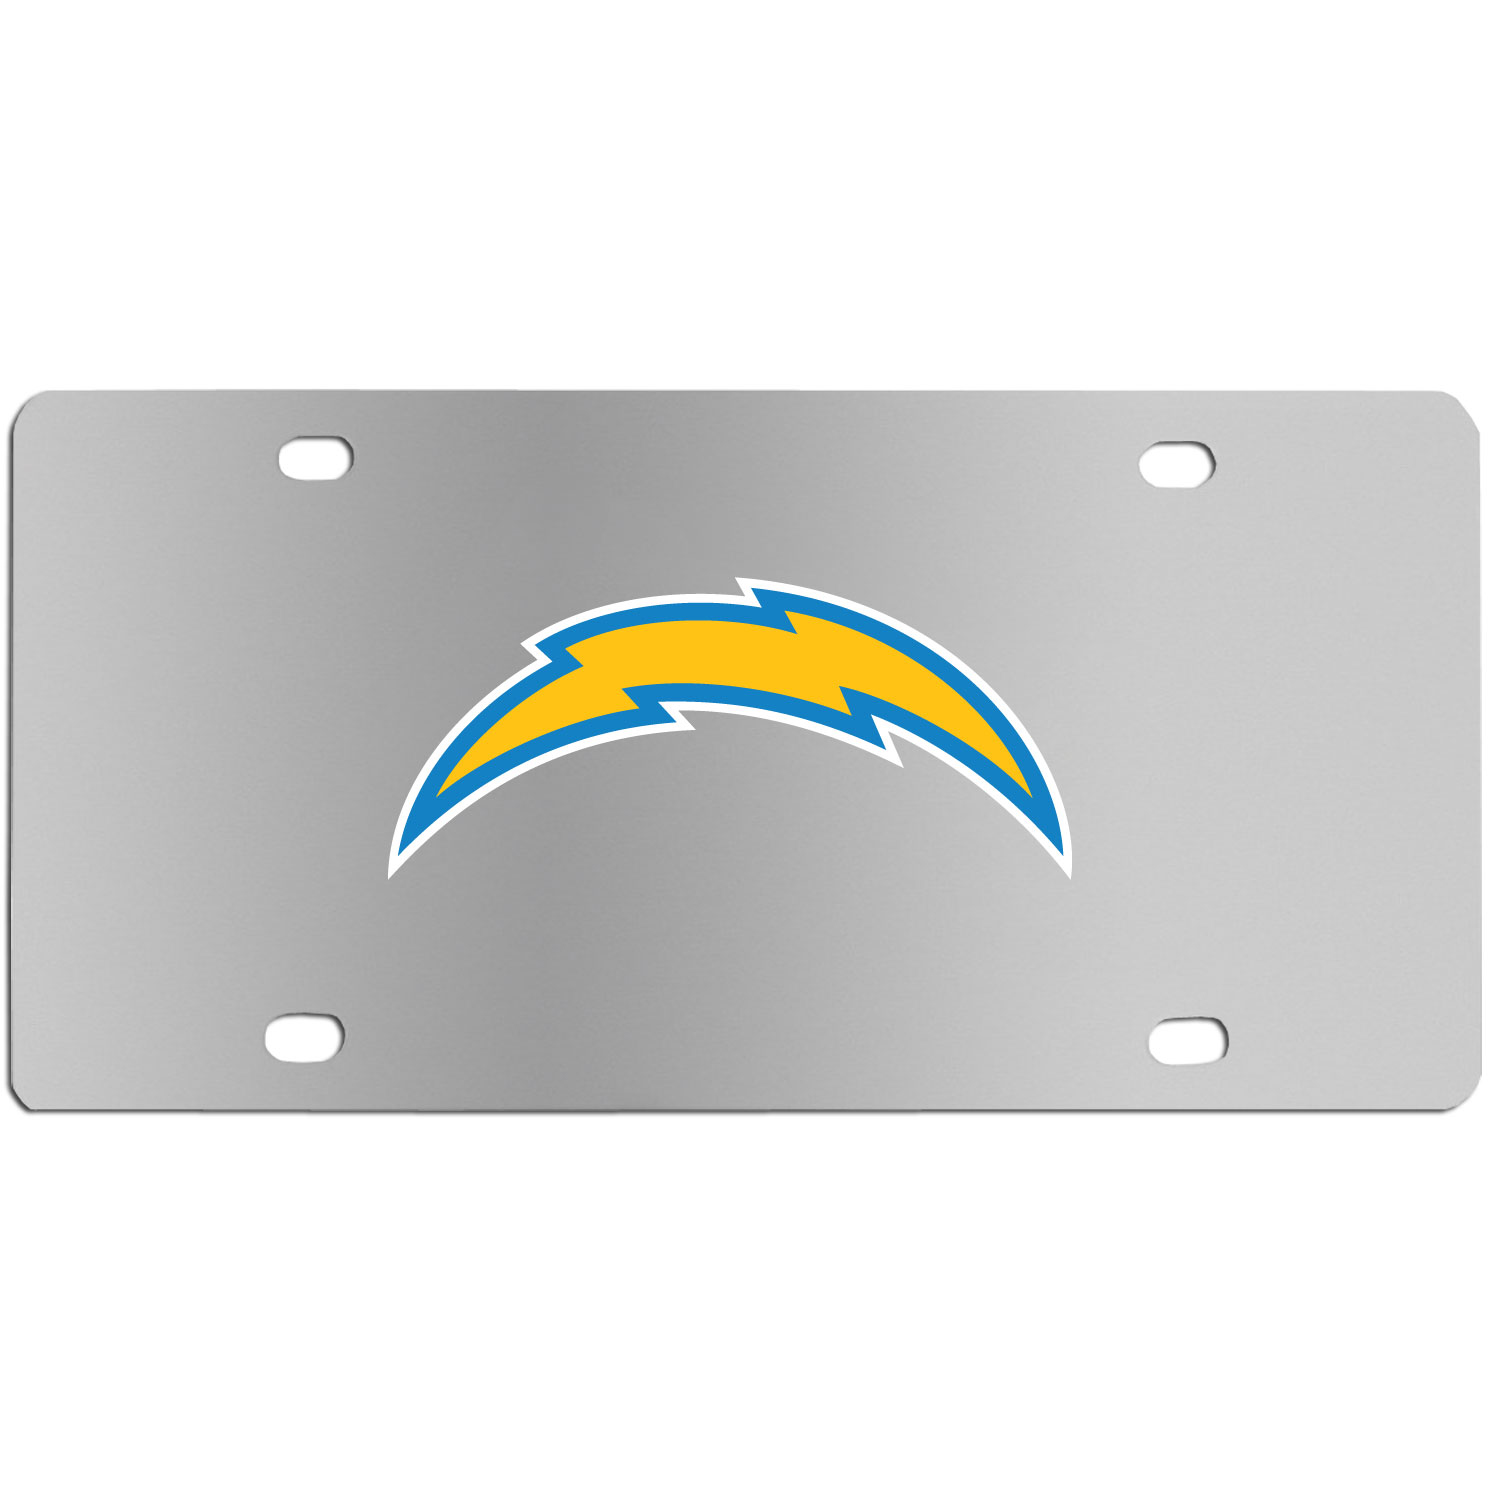 Los Angeles Chargers Steel License Plate Wall Plaque - This high-quality stainless steel license plate features a detailed team logo on a the polished surface. The attractive plate is perfect for wall mounting in your home or office to become the perfect die-hard Los Angeles Chargers fan decor.